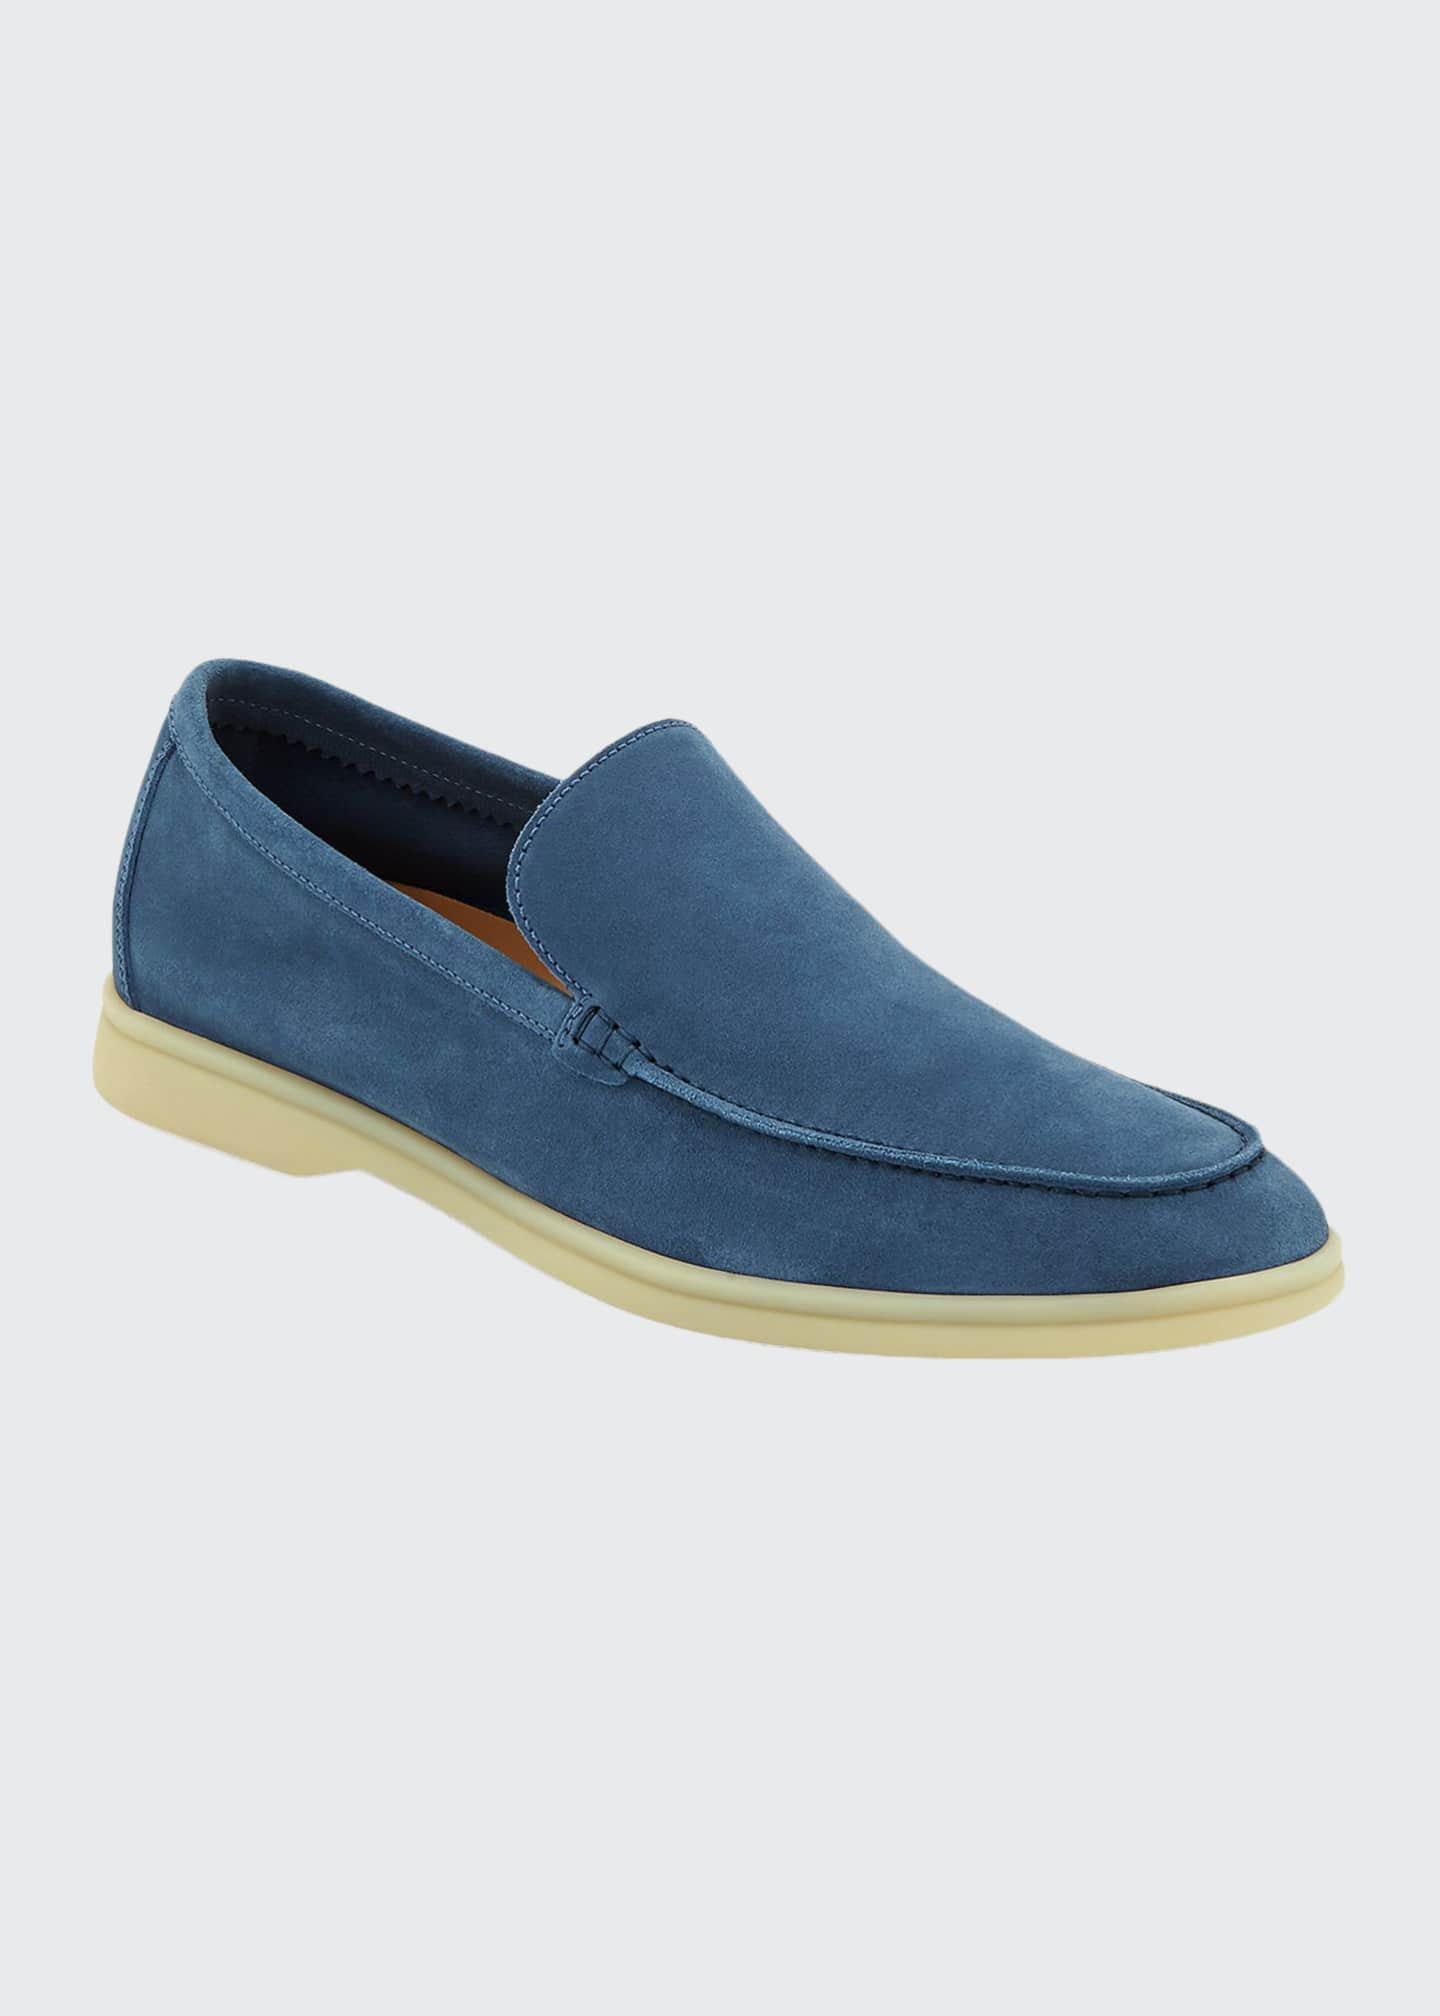 Image 1 of 3: Men's Summer Walk Suede Loafers